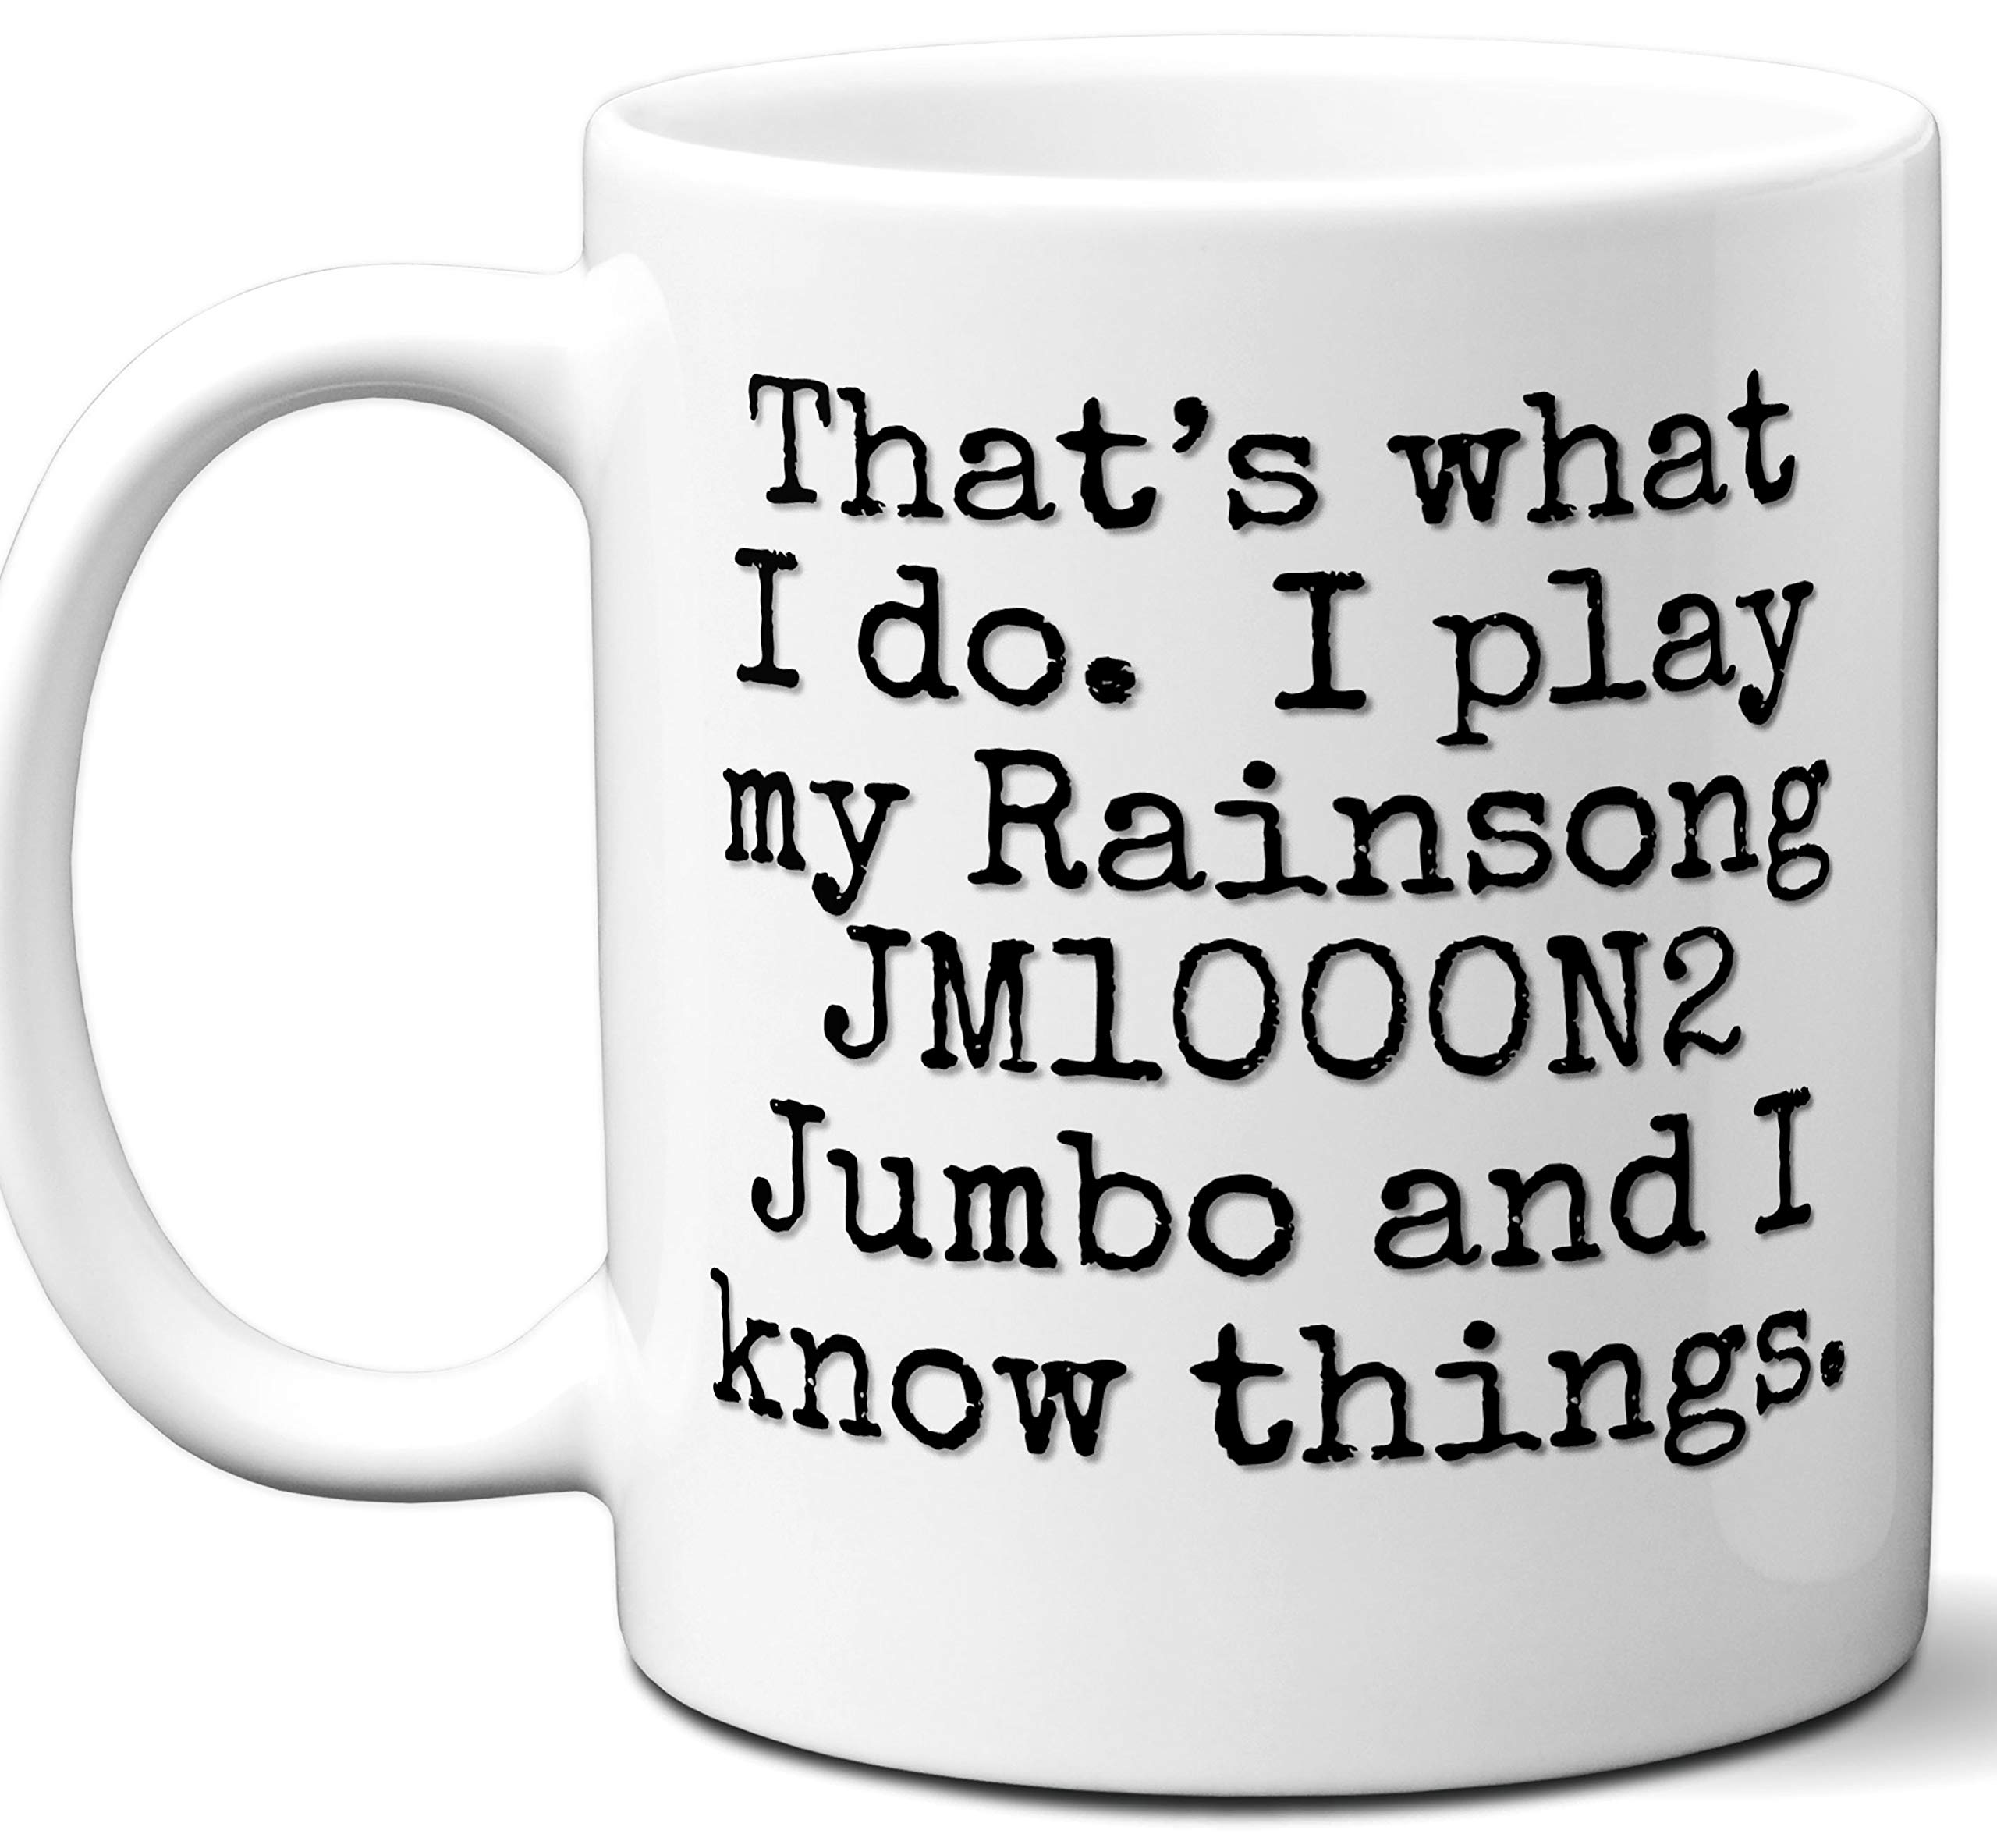 Guitar Gifts Mug. Rainsong JM1000N2 Jumbo Guitar Players Lover Accessories Music Teacher Lover Him Her Funny Dad Men Women Card Pick Musician Acoustic Unique by Ombura